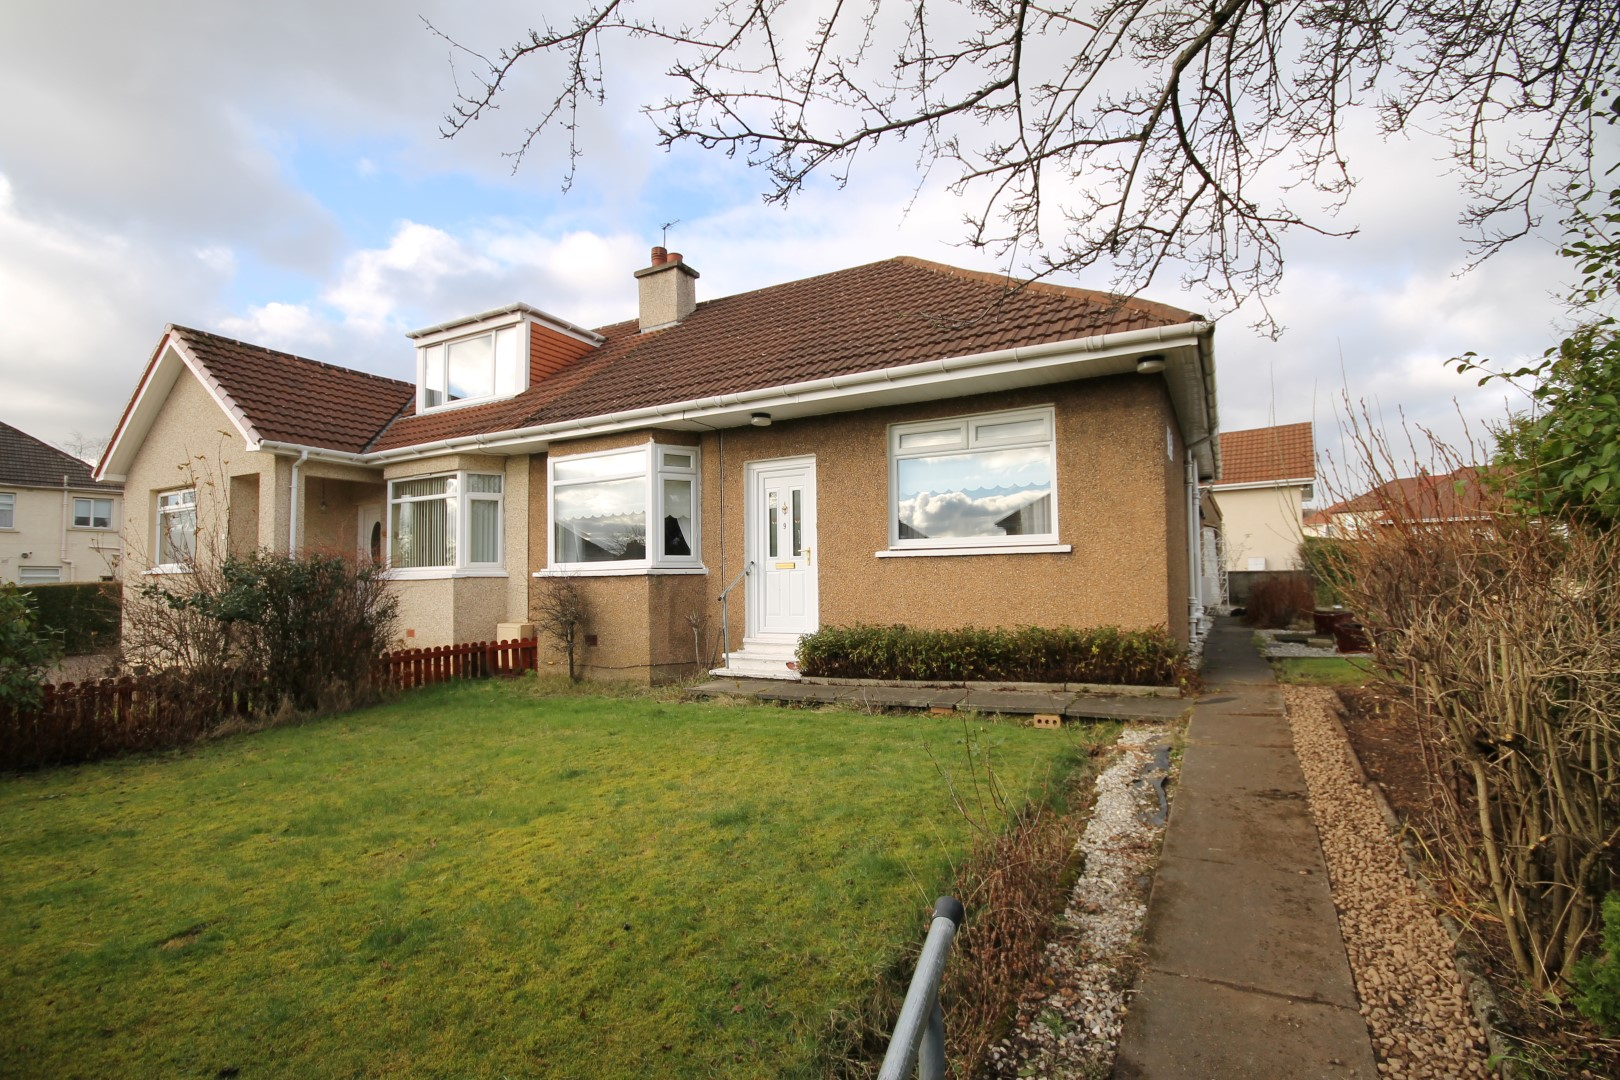 BAILLIESTON – 2 Bedroom semi-detached bungalow